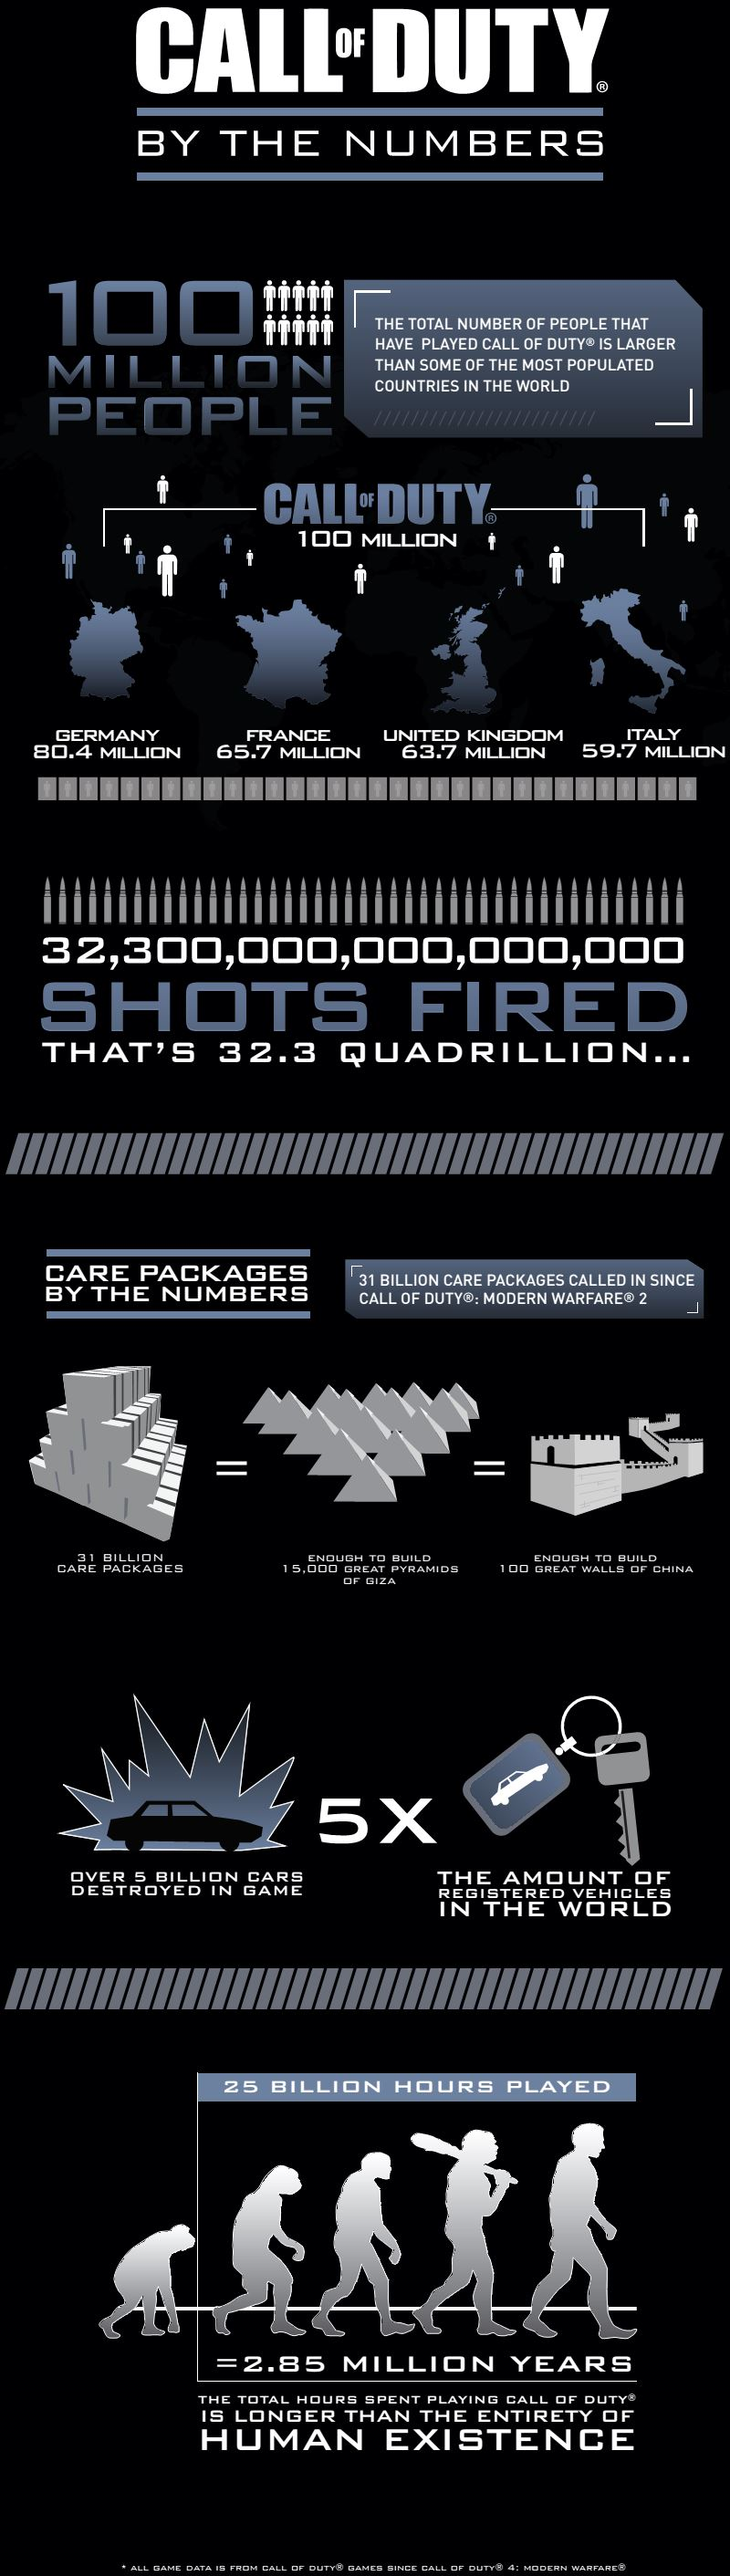 Call of Duty Infographic